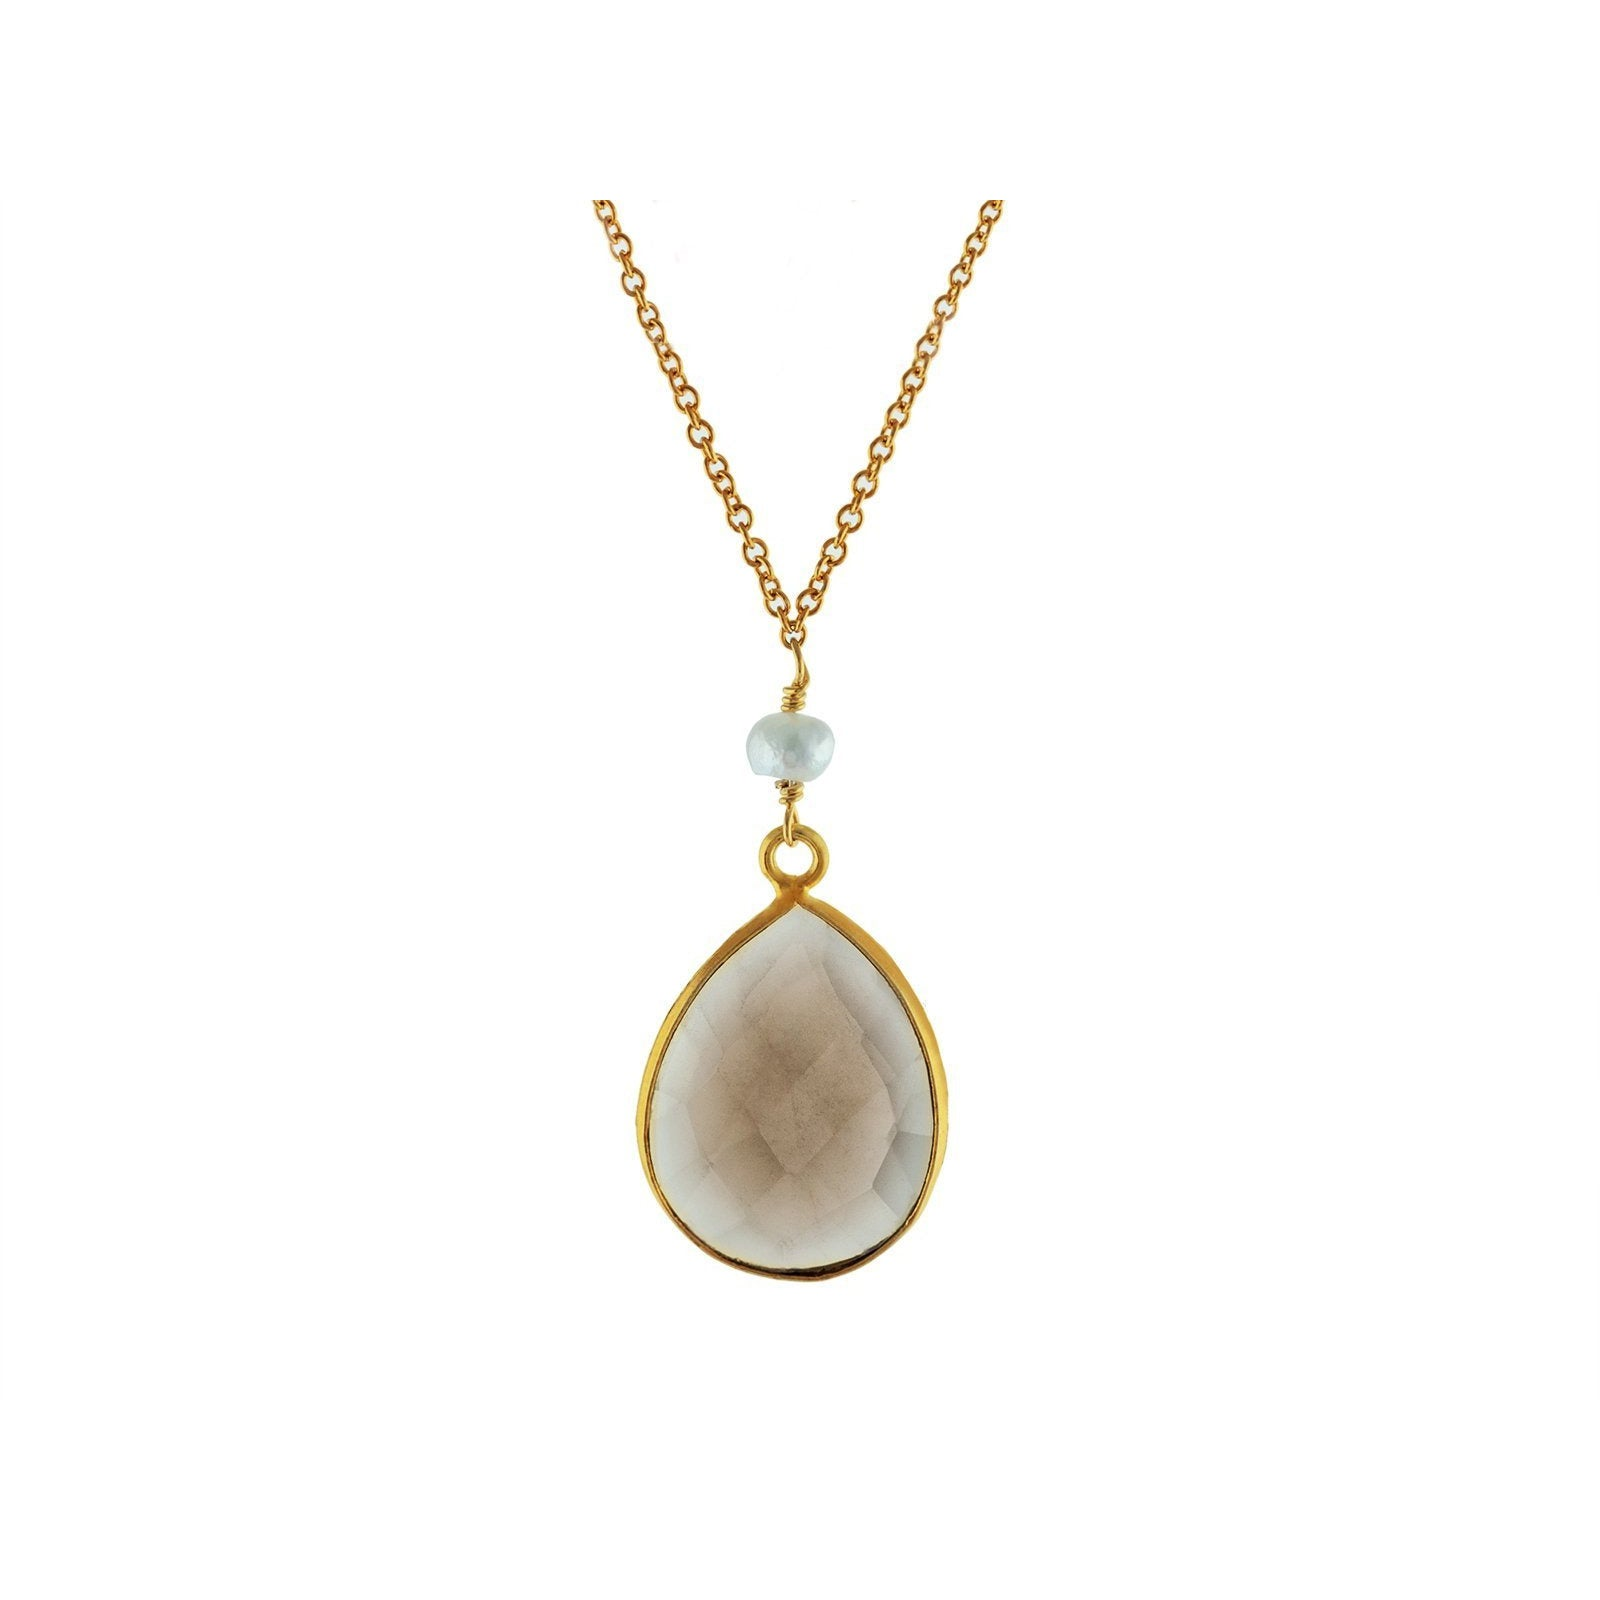 Tear Drop Natural Smoky Quartz & Pearl Necklace - Miraposa